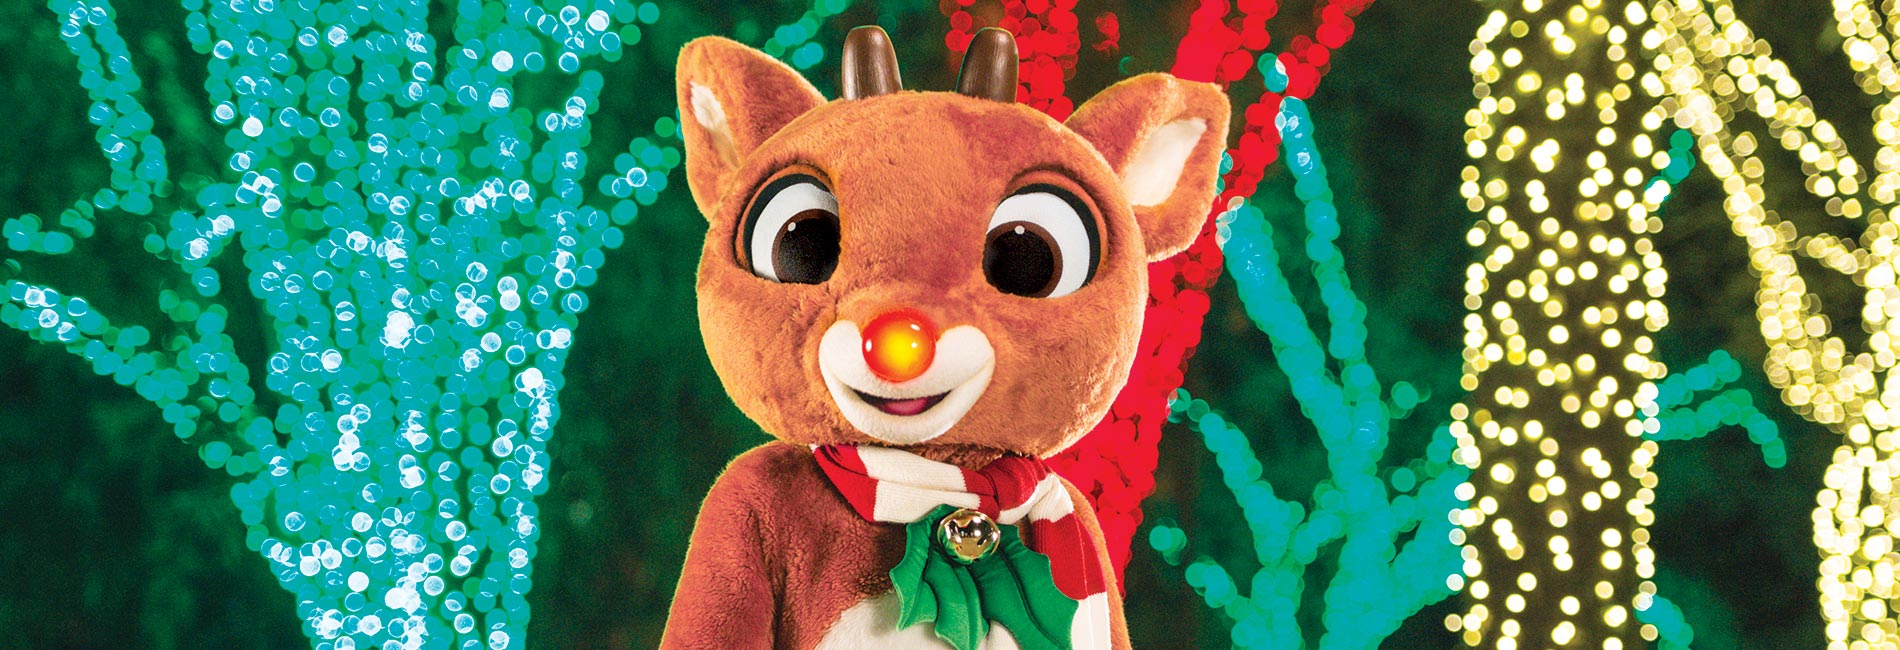 Meet Rudolph the Red-Nosed Reindeer at Sesame Place